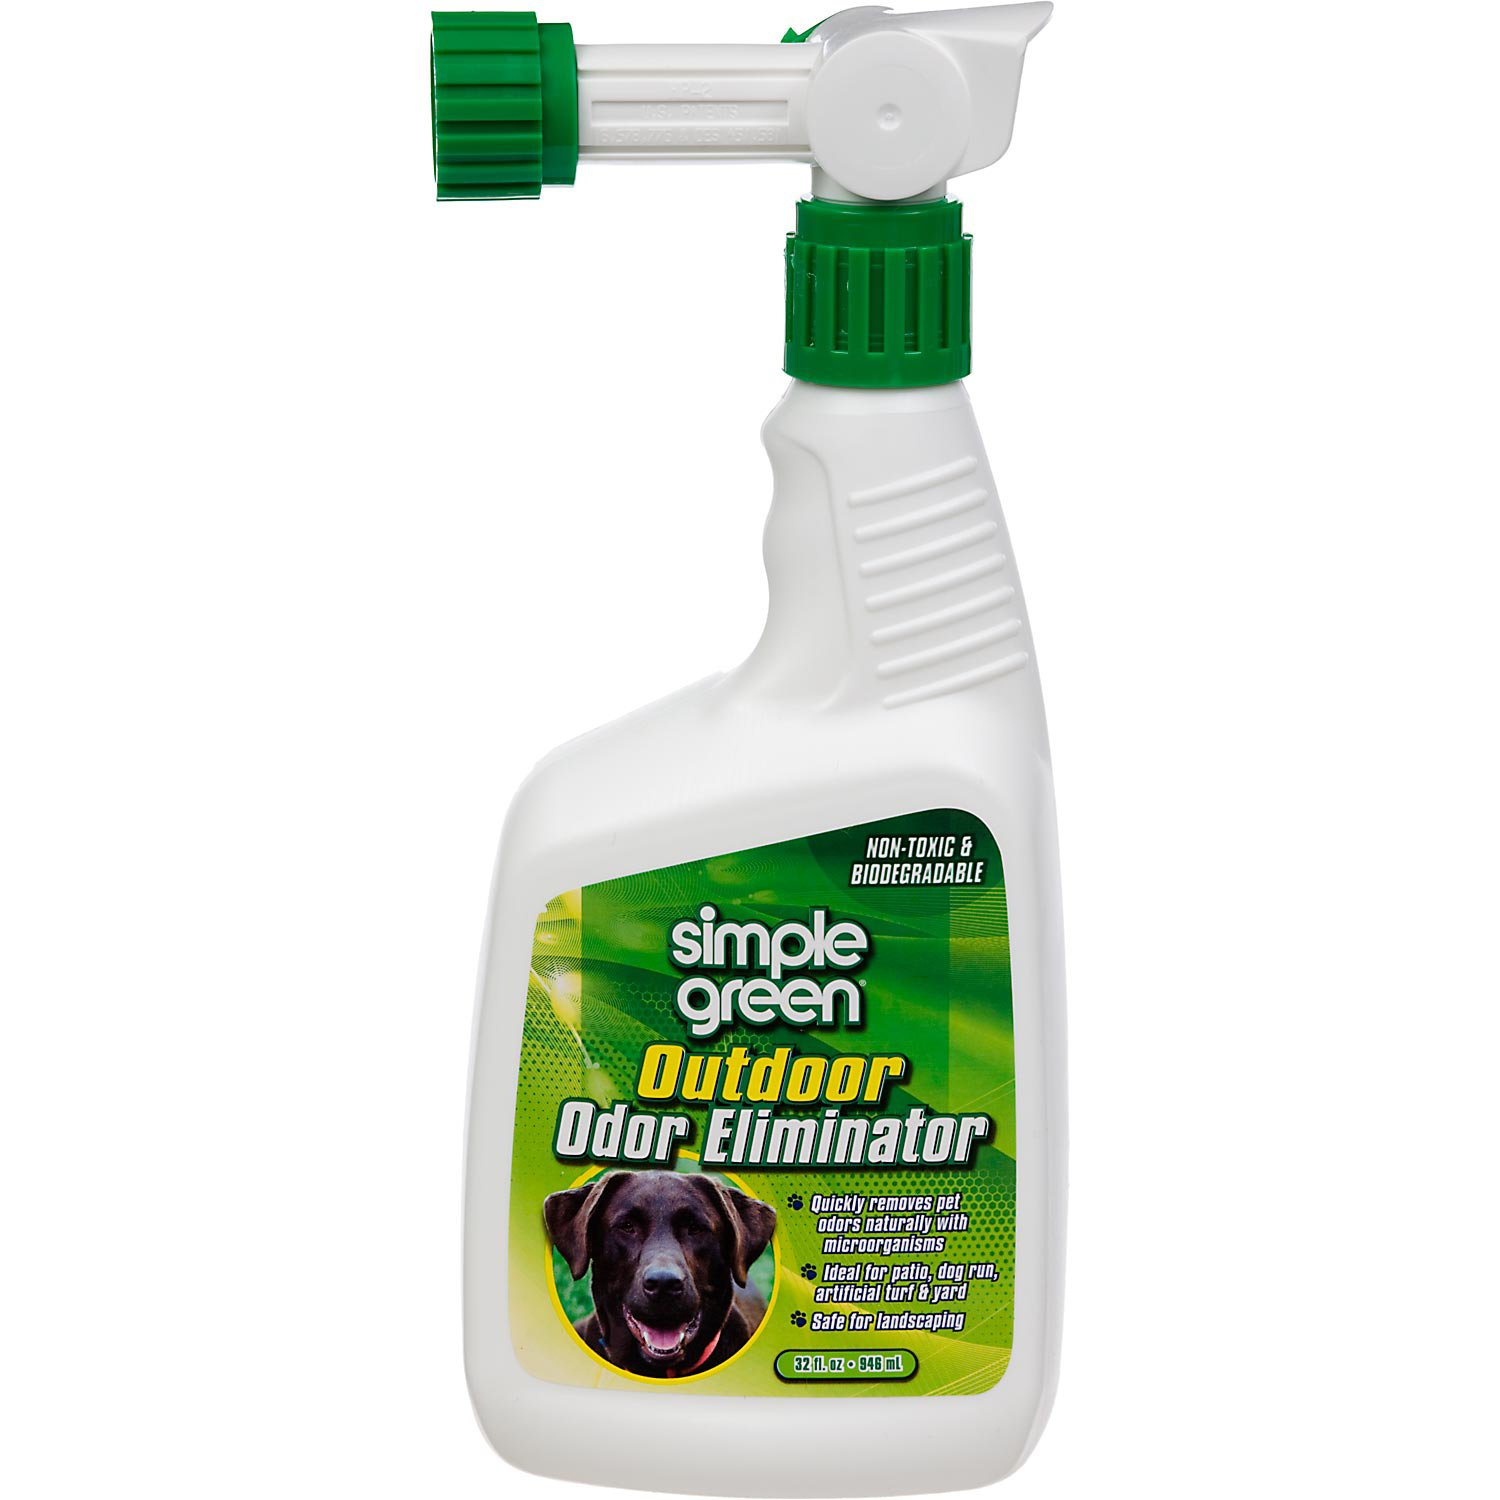 Simple green outdoor cleaner